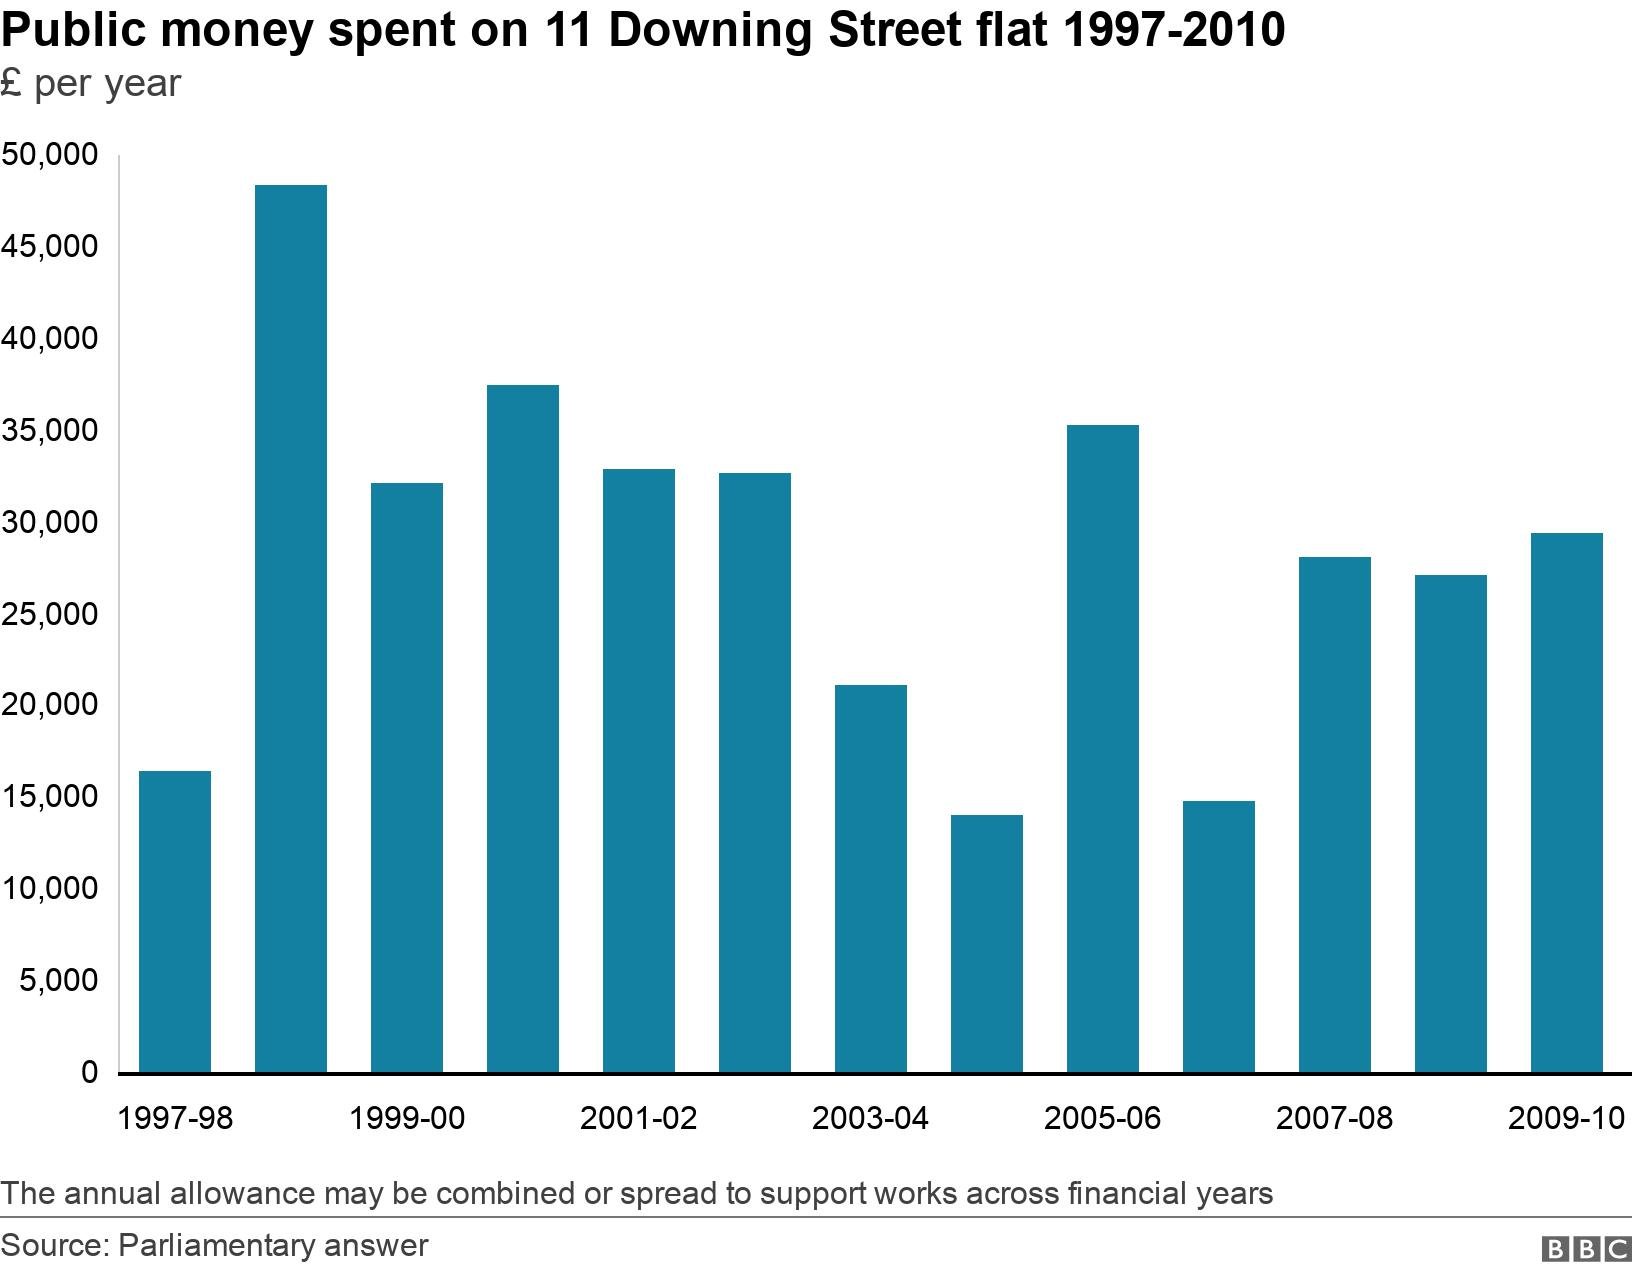 Public money spent on 11 Downing Street flat 1997-2010. £ per year. The annual allowance may be combined or spread to support works across financial years.